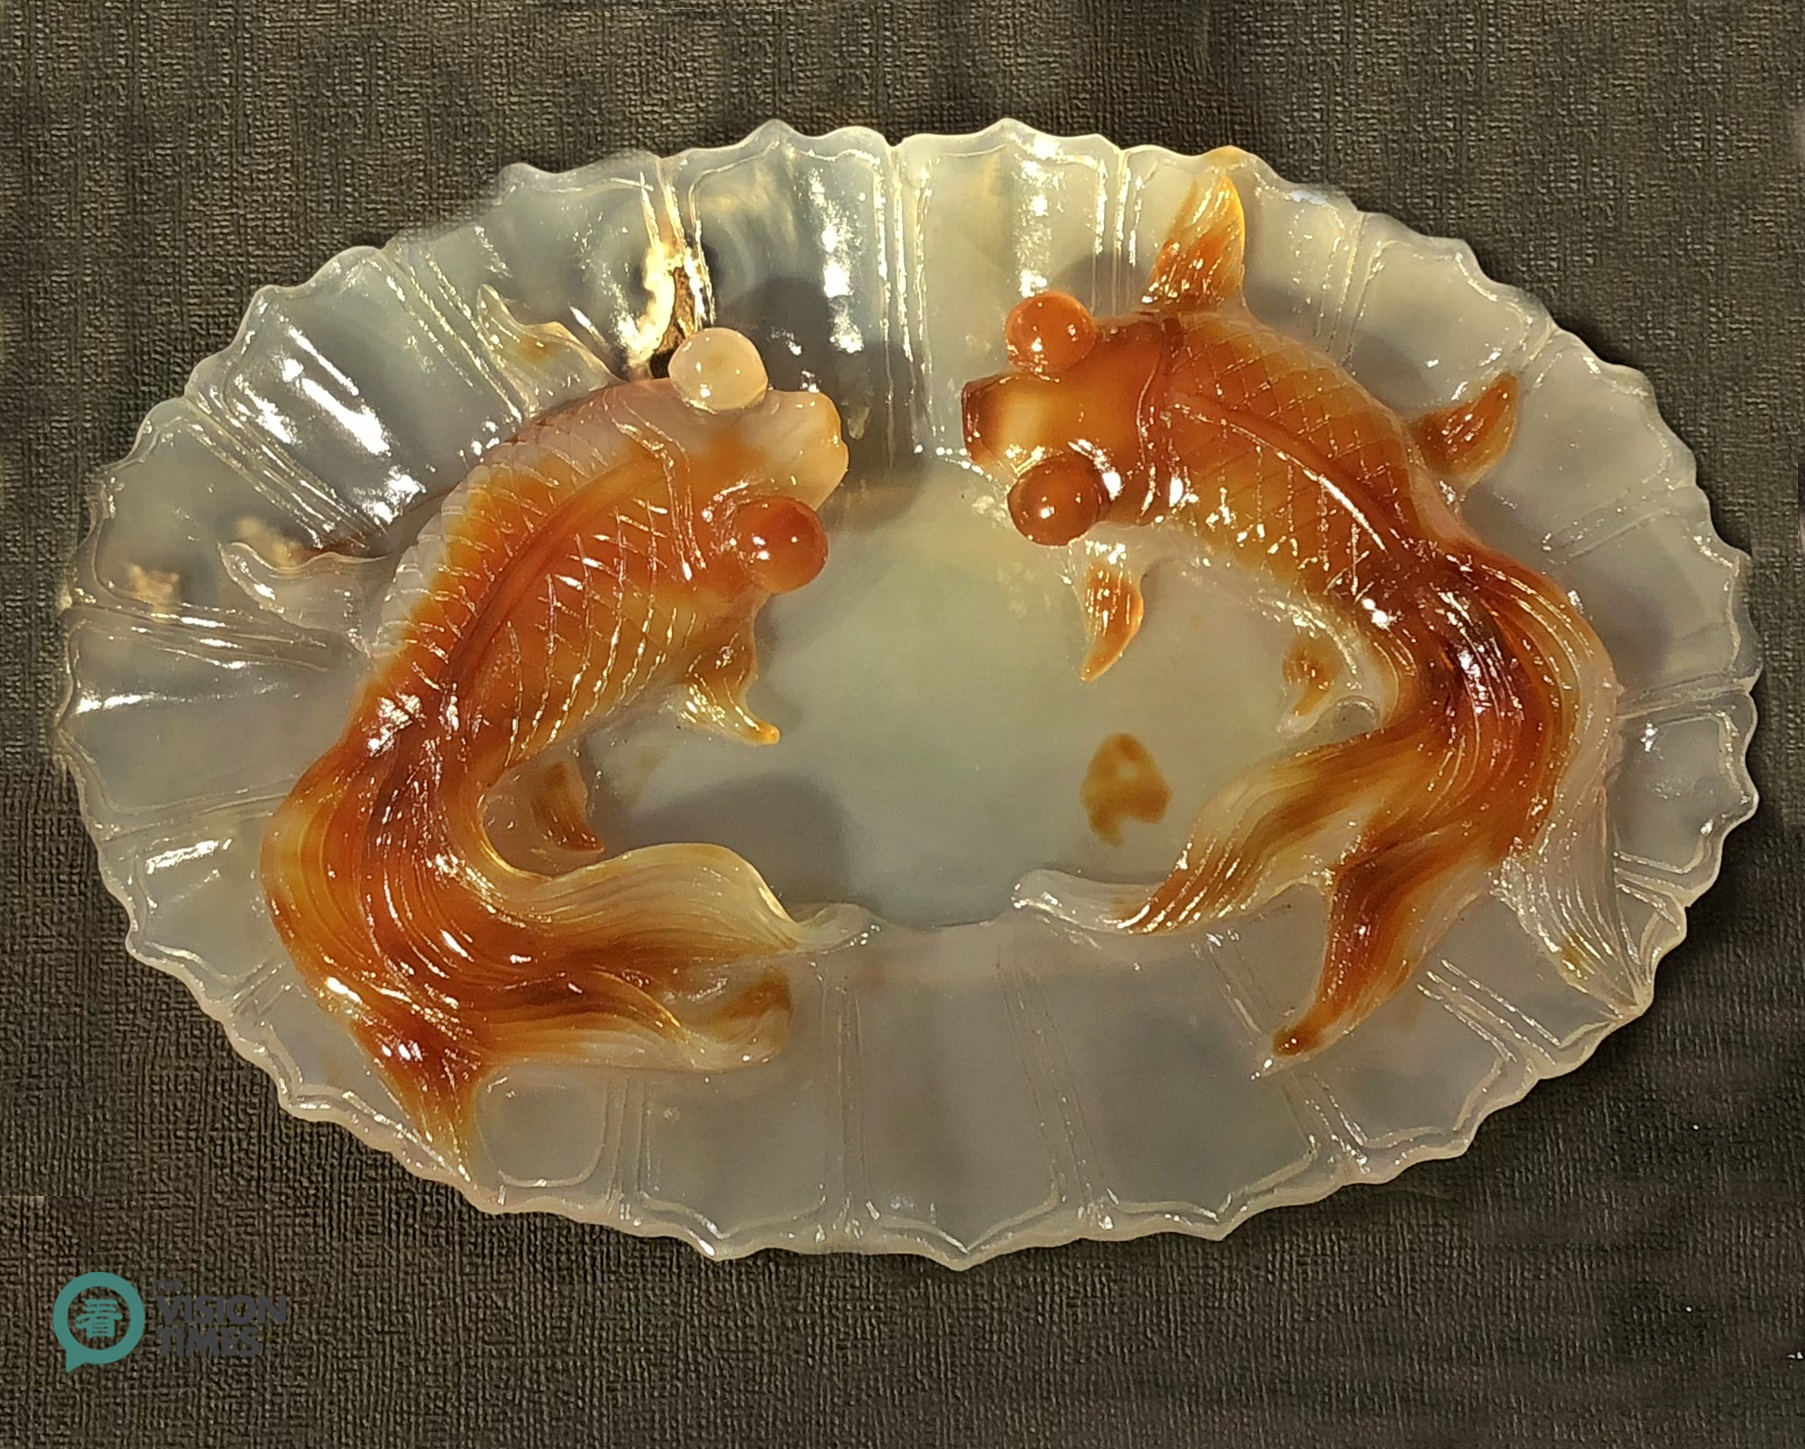 One of the fish jade items displayed at the Commemorative Fish Jade Exhibition. Image: Billy Shyu / Vision Times)